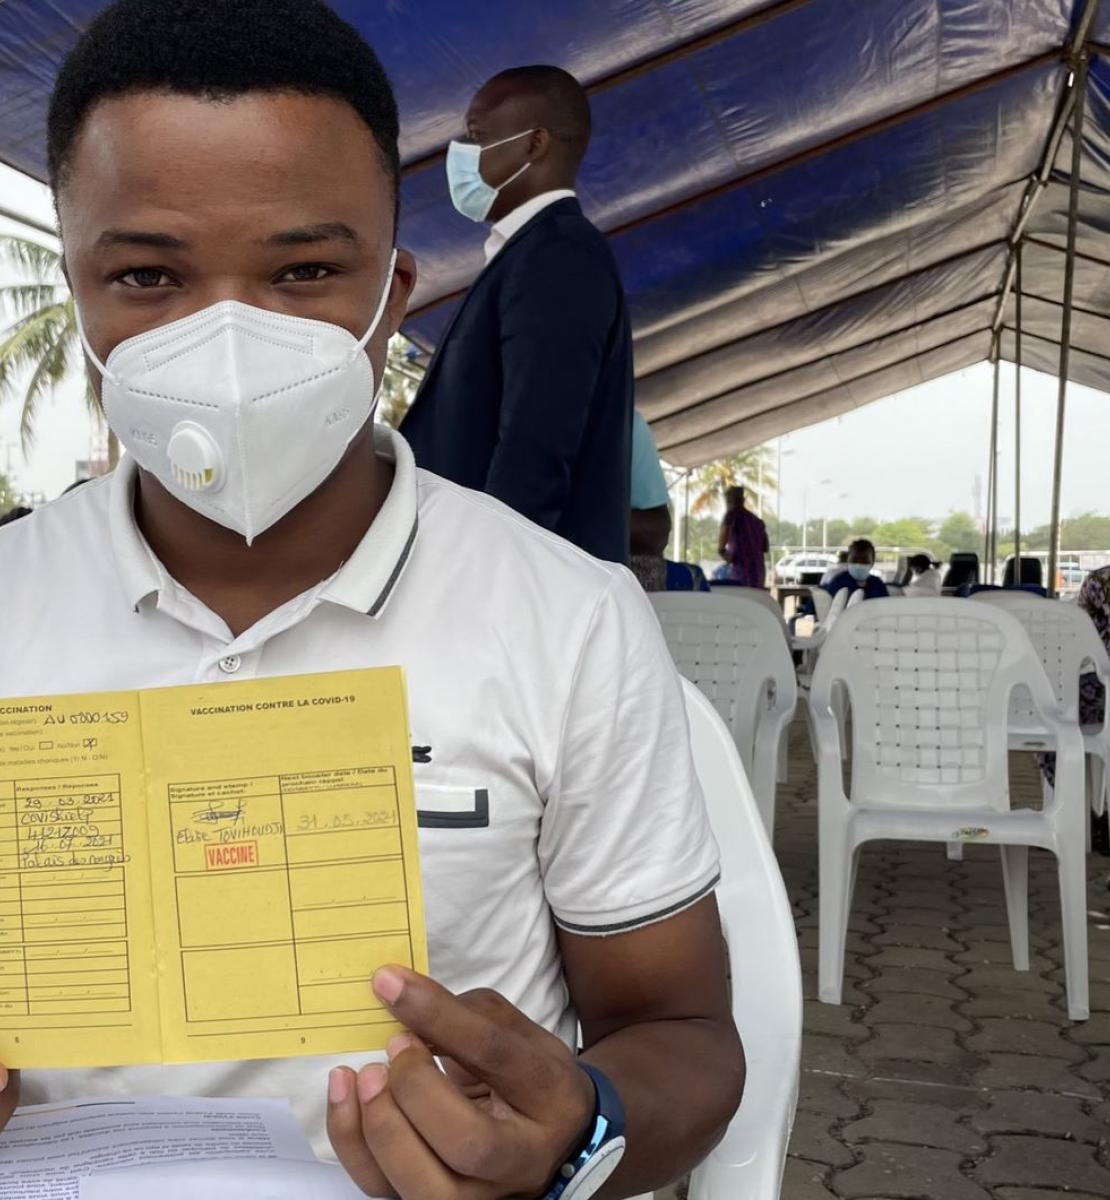 A man in a white shirt and white face mask holds up a yellow COVID-19 vaccination card.